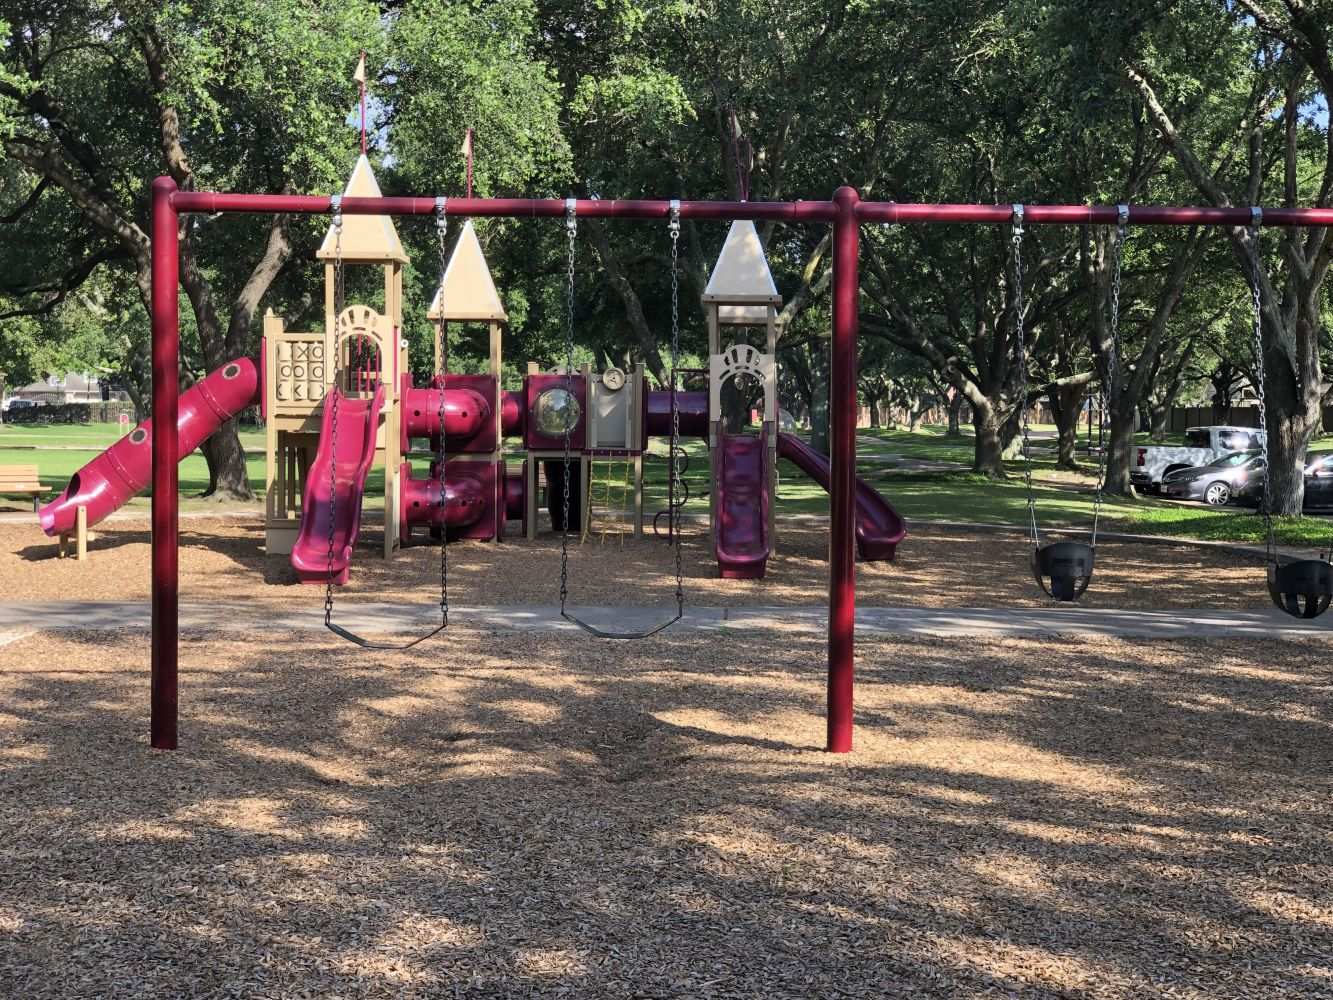 South Lake Playground